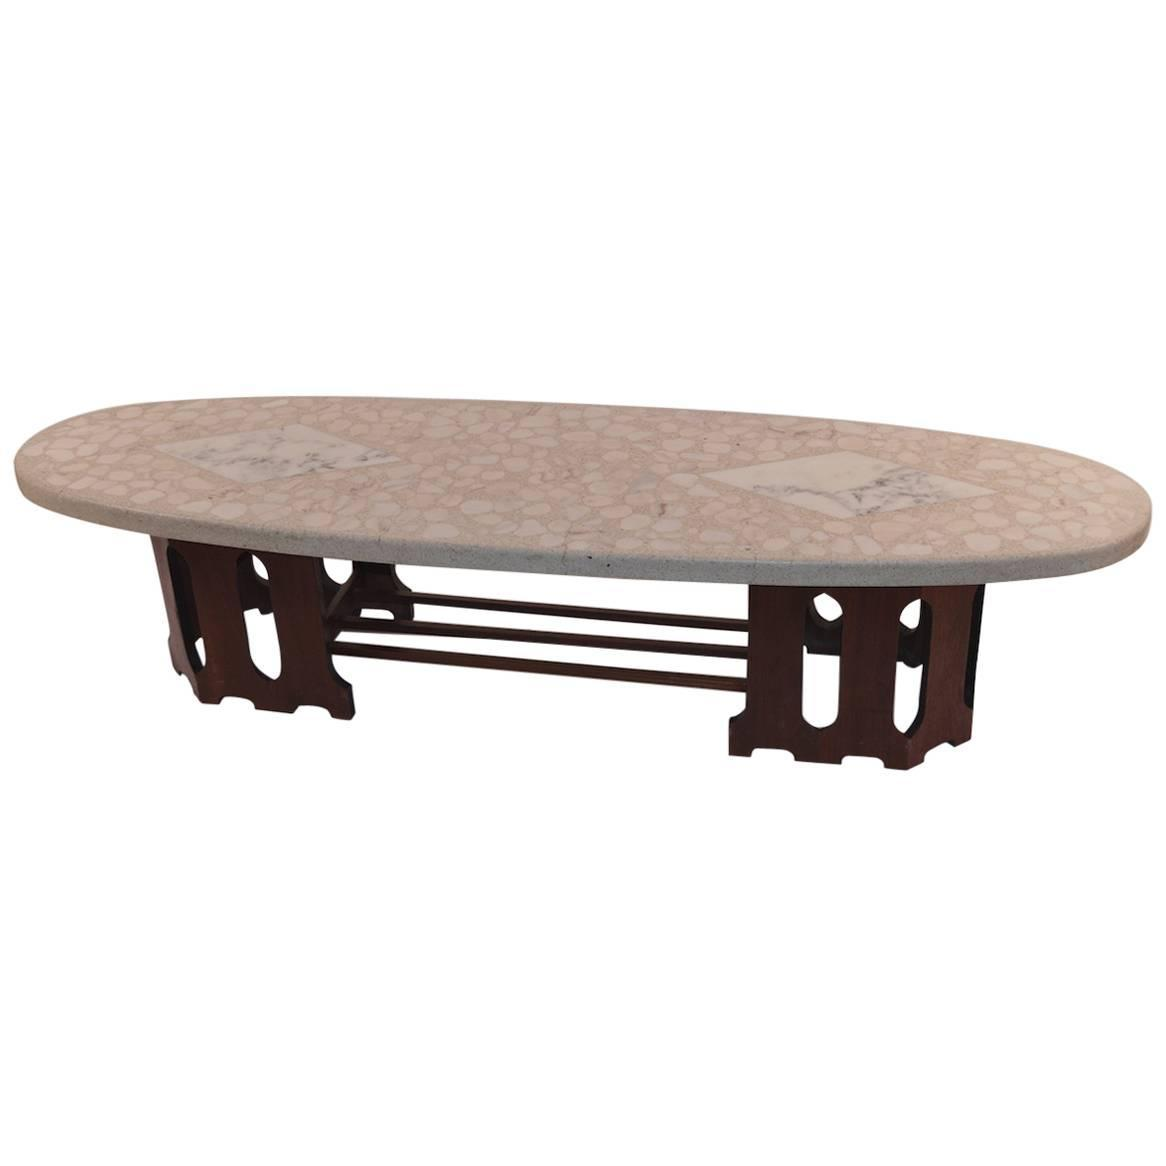 Surfboard Tables For Sale Terrazzo Top Surfboard Coffee Table By Probber For Sale At